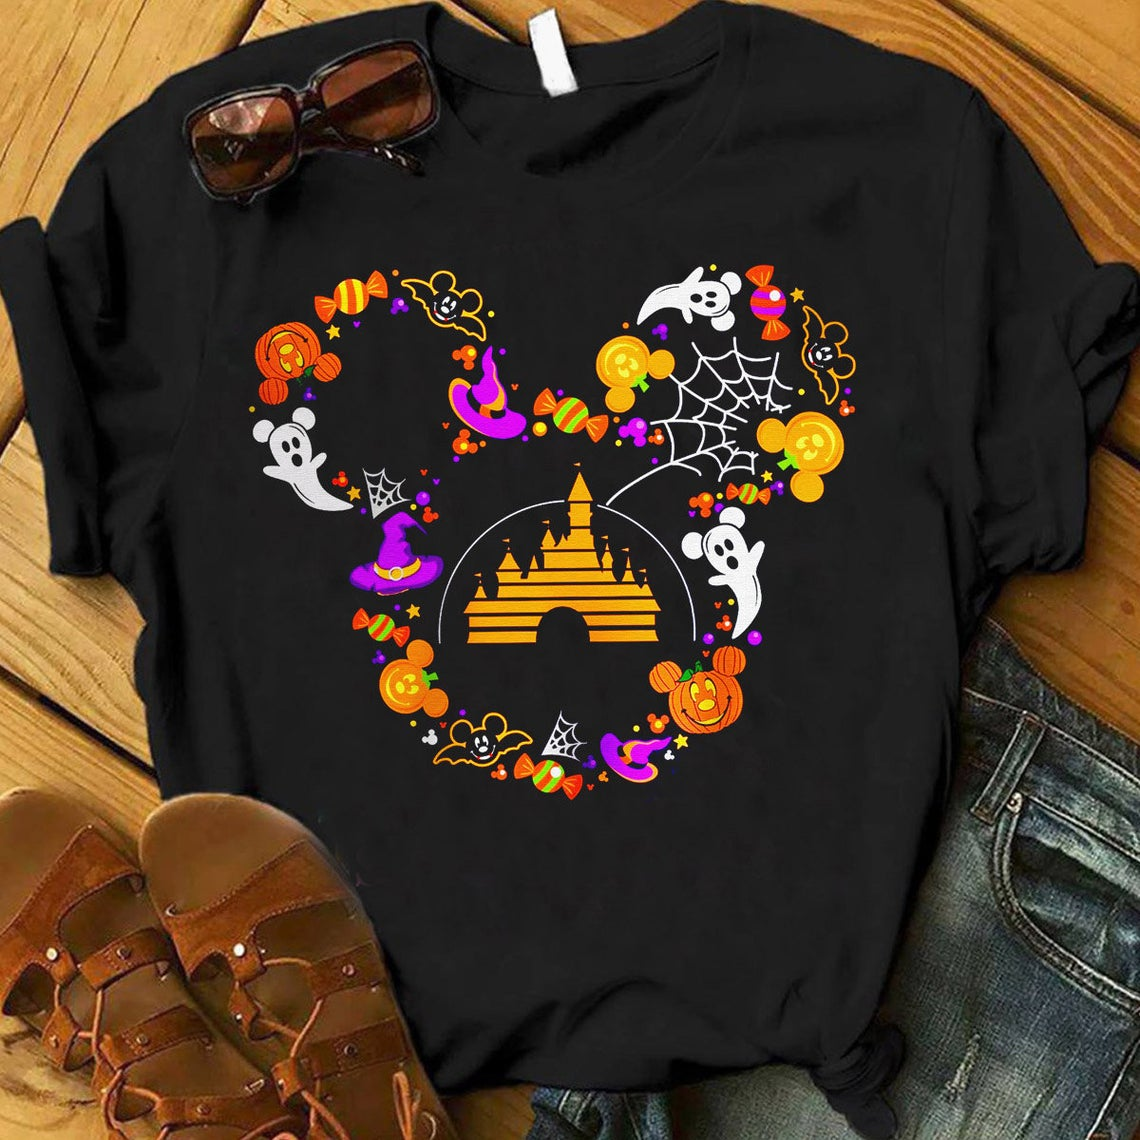 Disney Mickey Halloween Shirt, Best Tshirt Halloween Horror Movie Squad 2020